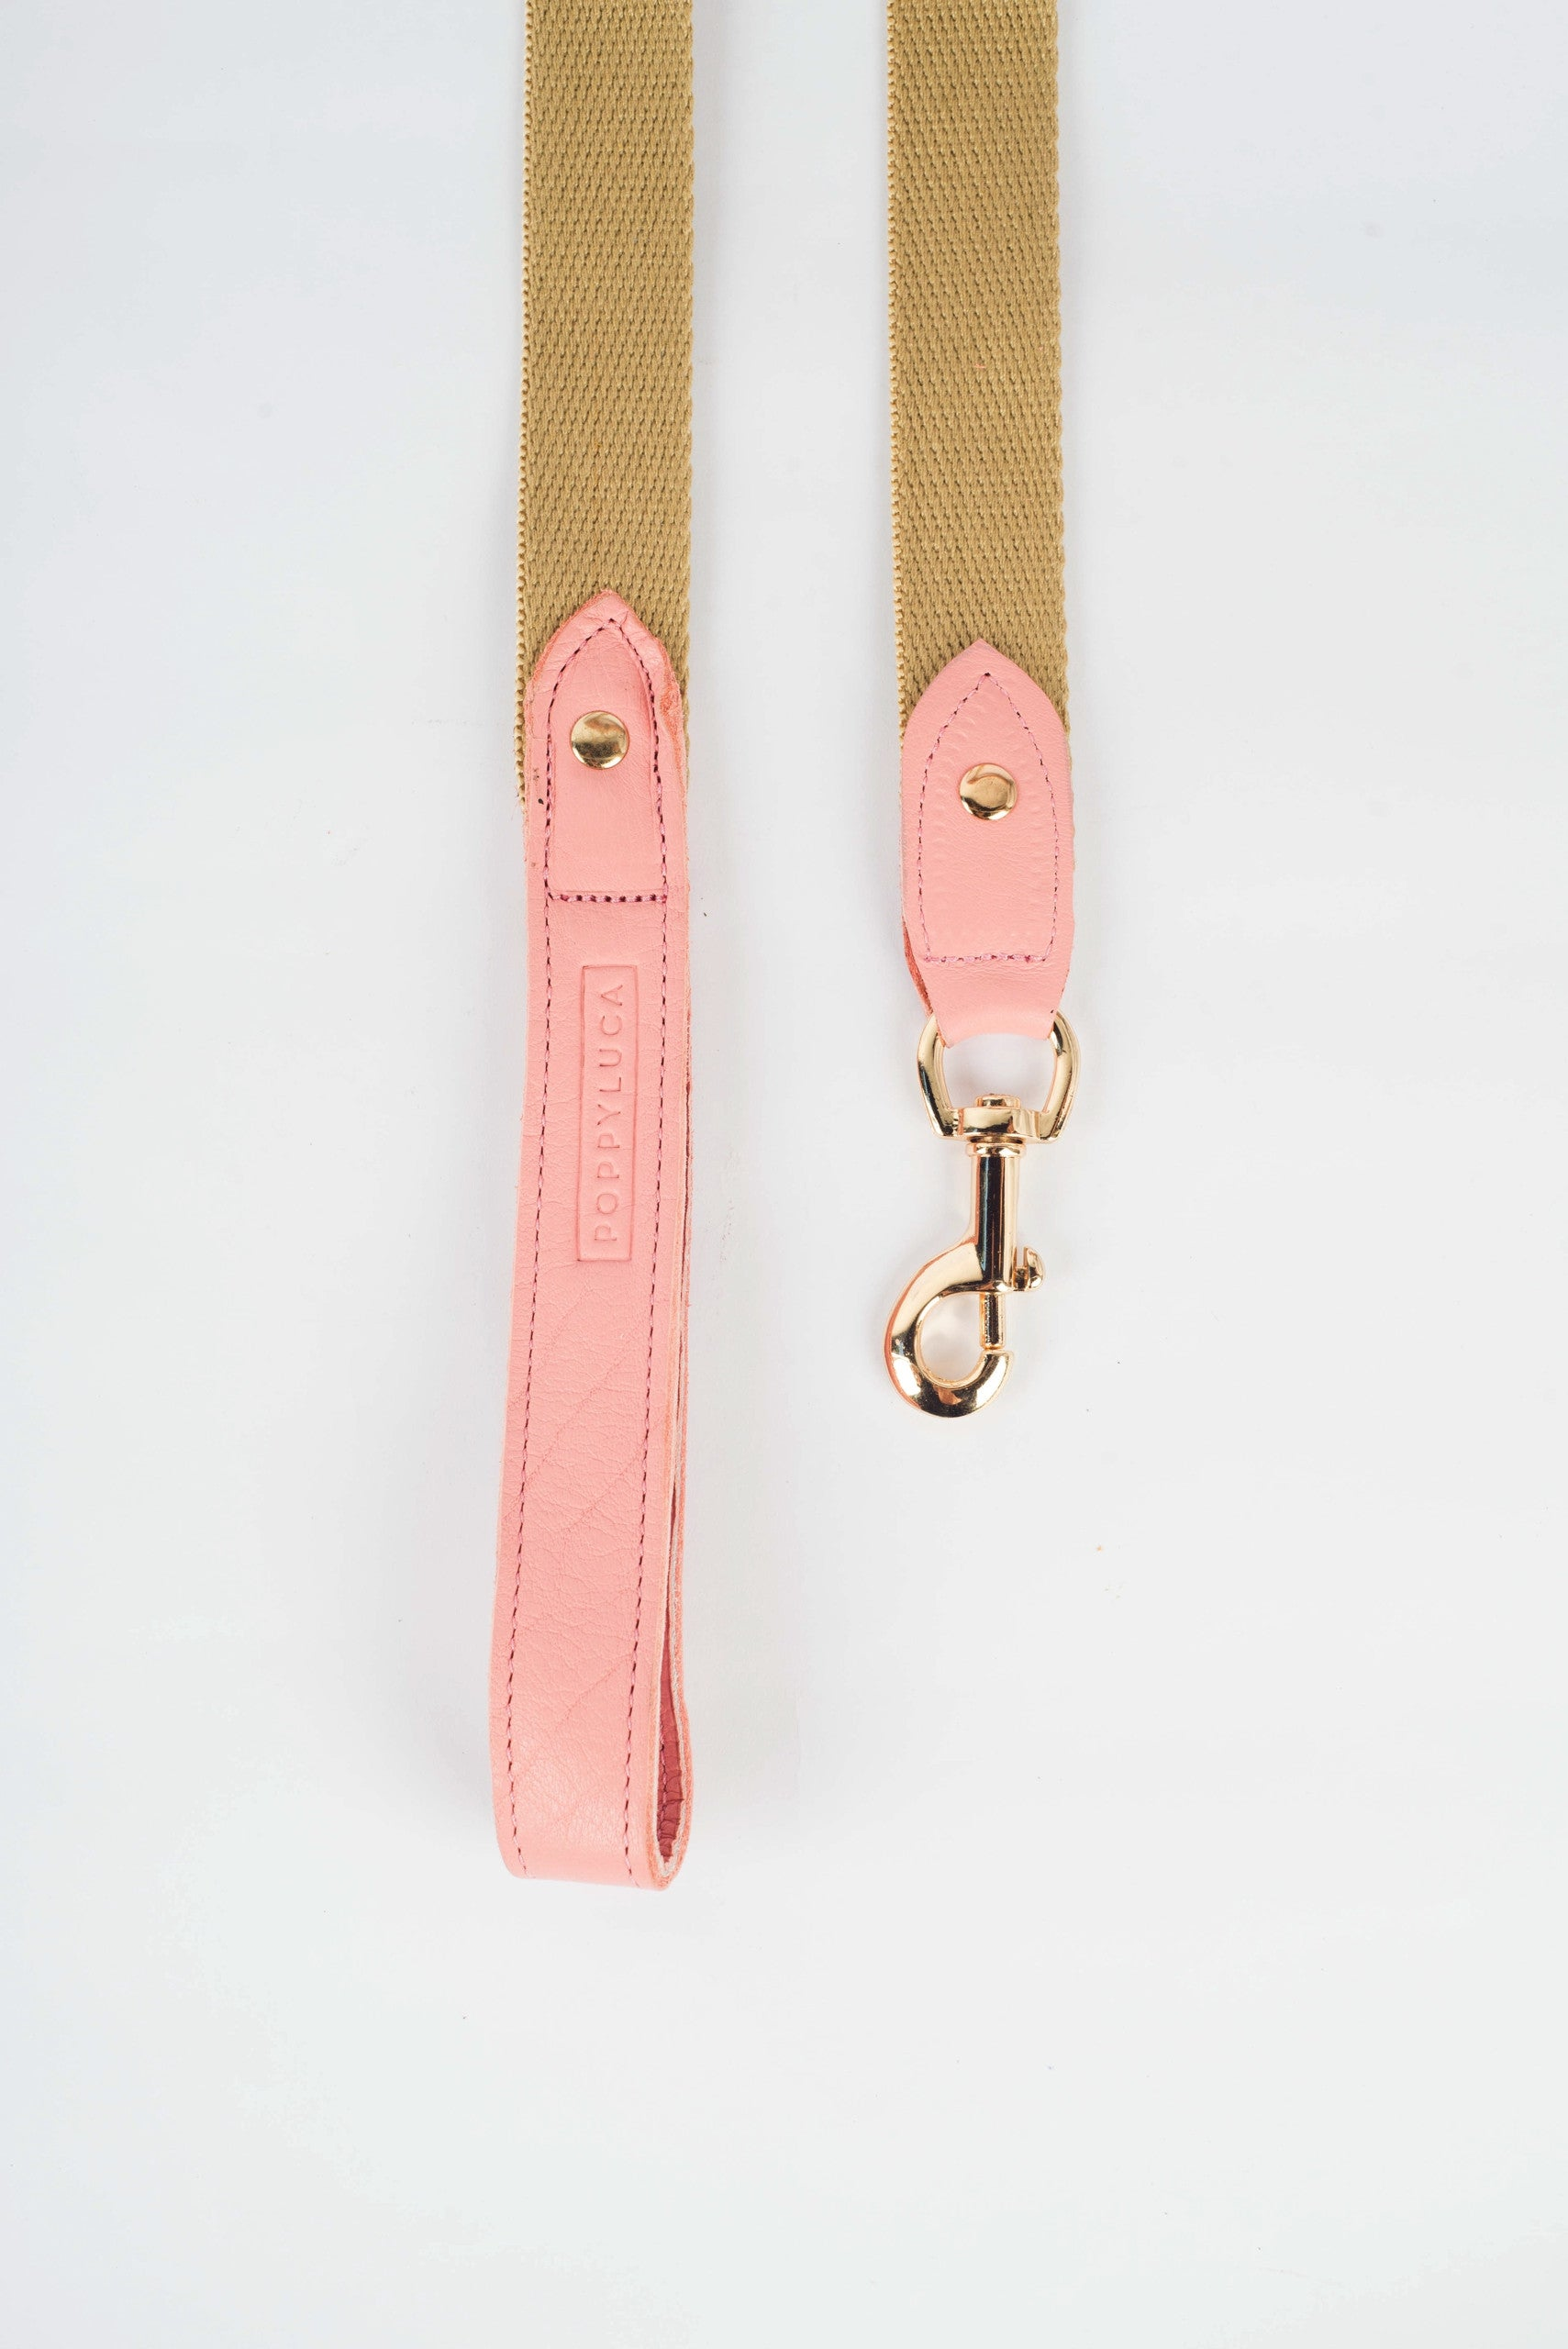 Butter Leather with Canvas Leash